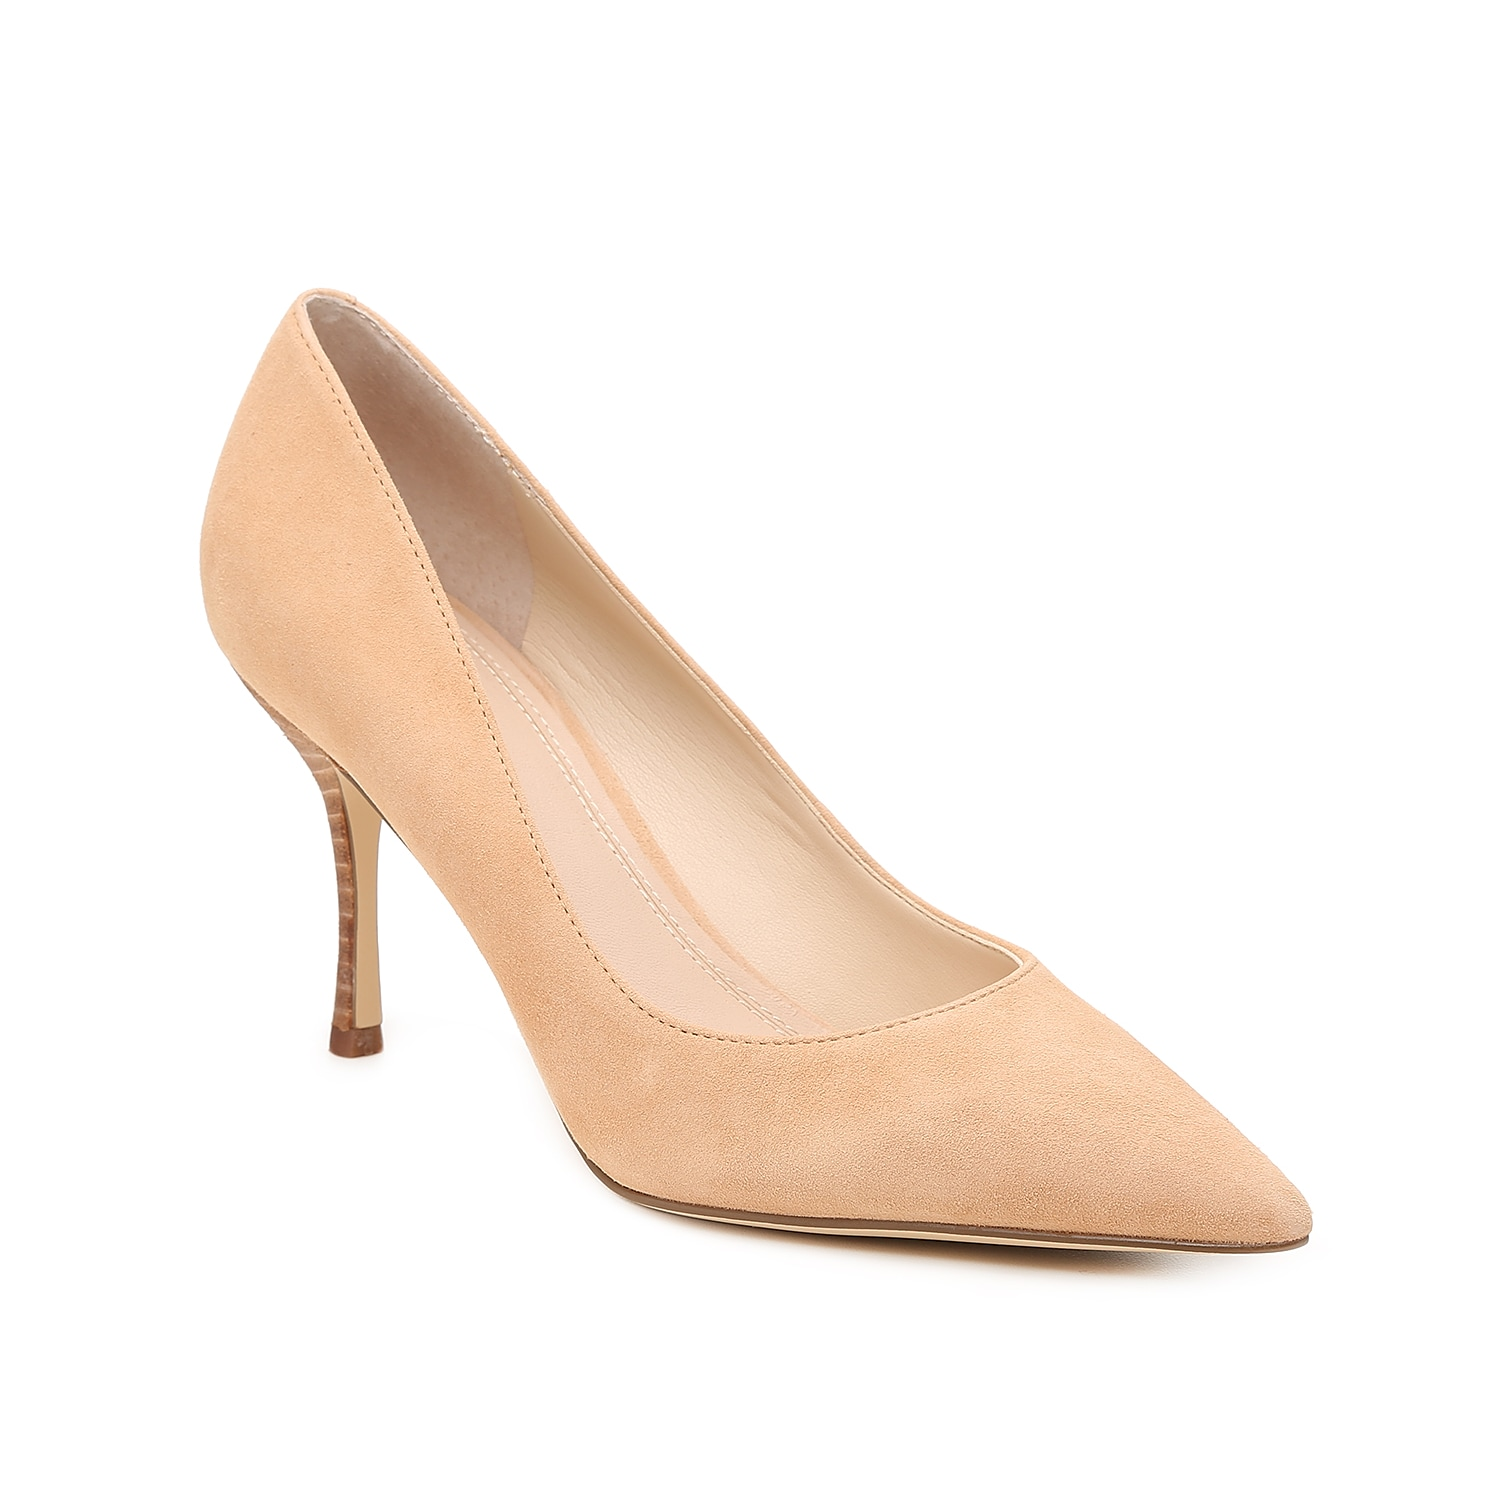 Freshen up your office attire with the Carter pump from Marc Fisher Ltd. This classic silhouette is fashioned with a leather lining and an elevated heel for all the height!